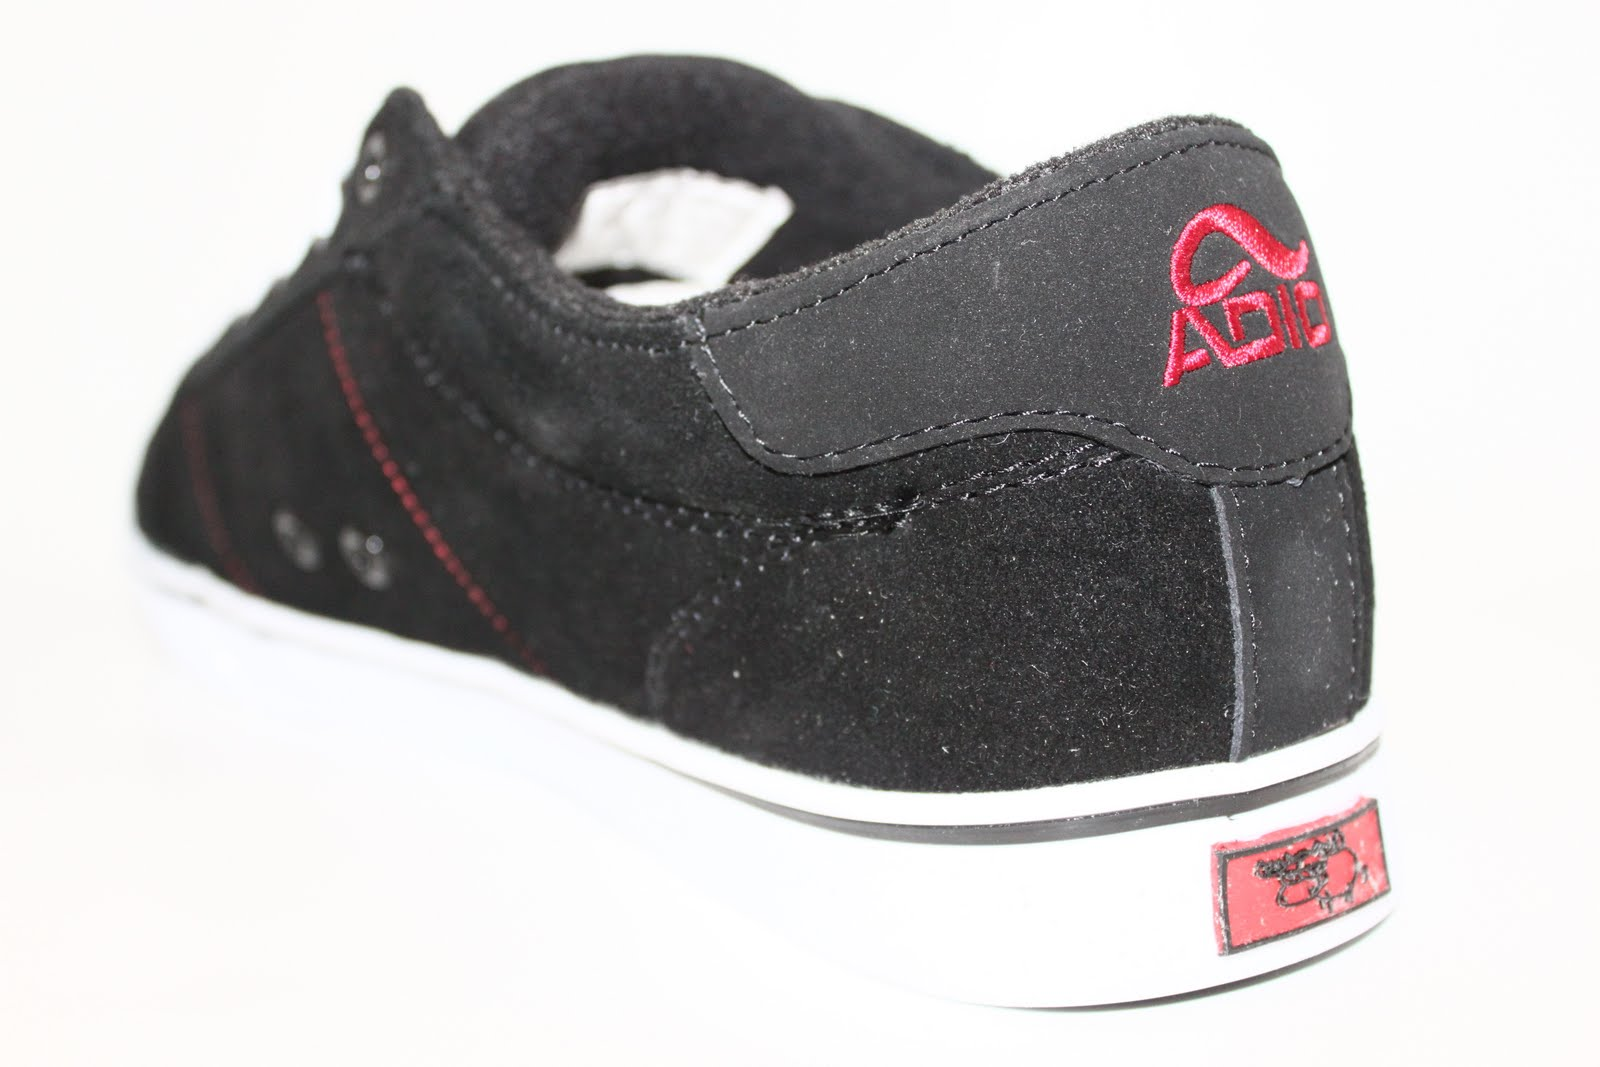 abbe78bd416f News and Updates  Brand New Adio shoes have arrived!